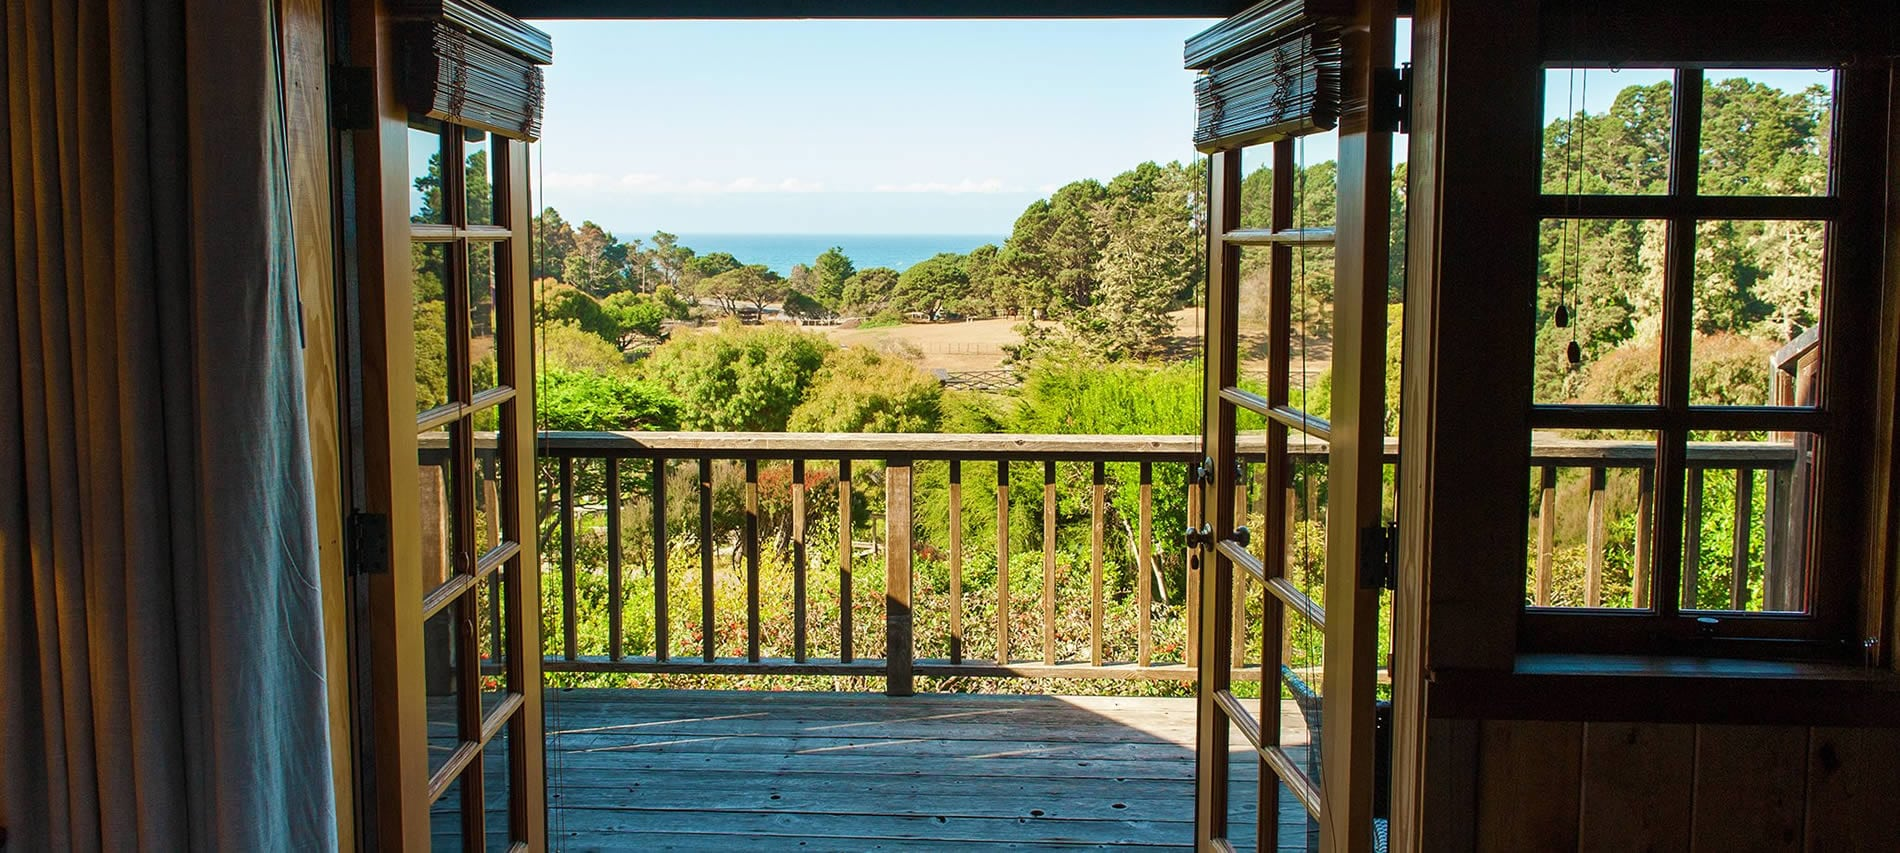 garden view to ocean view from stanford inn mendocino hotel & resort